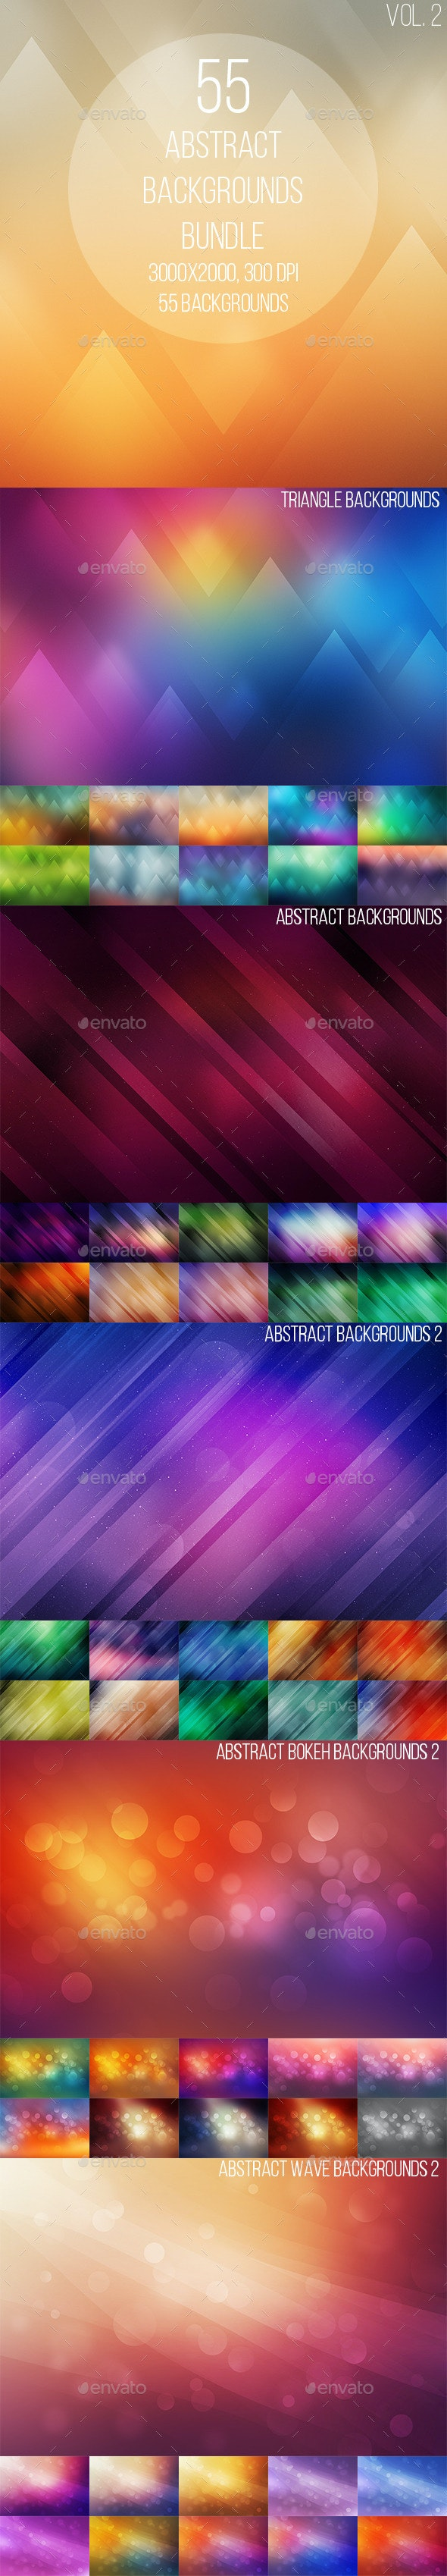 55 Abstract Backgrounds Bundle 2